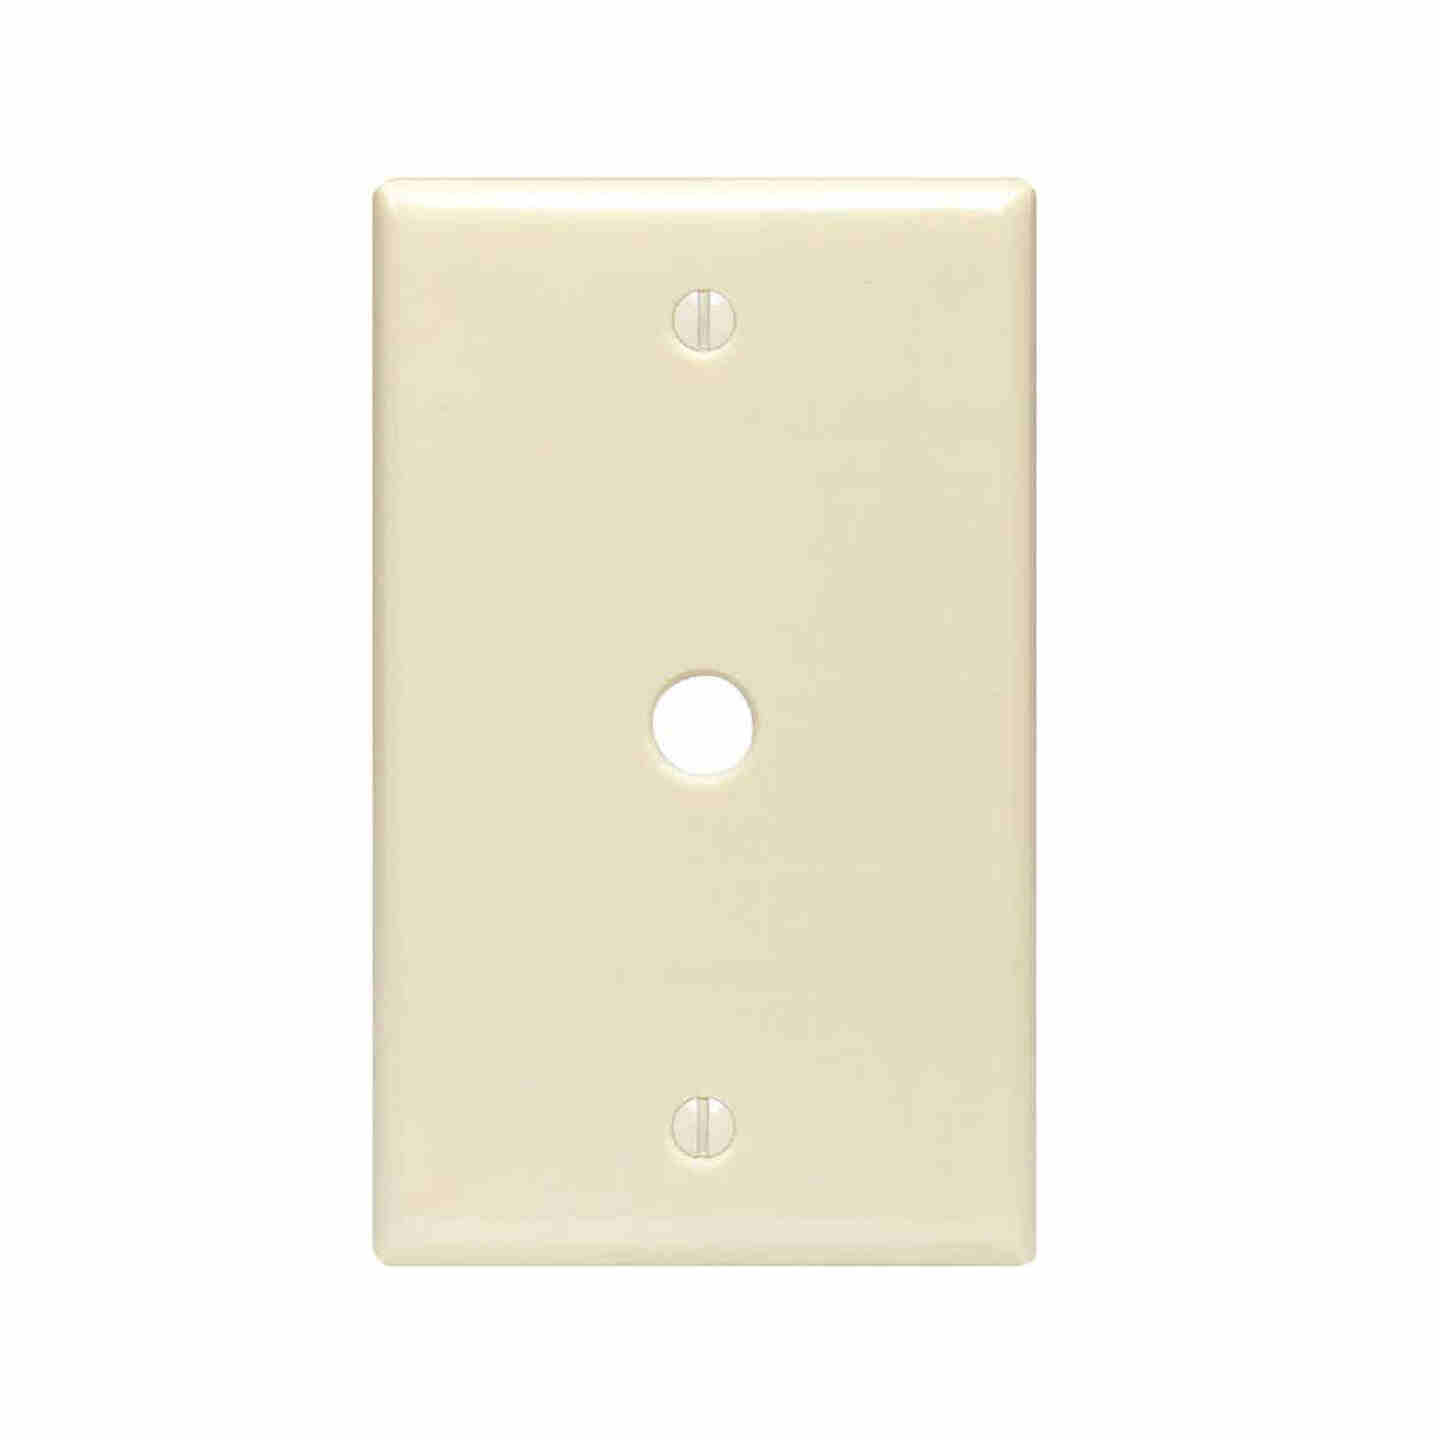 Leviton 1-Gang Plastic Ivory Telephone/Cable Wall Plate with 0.312 In. Hole Image 1